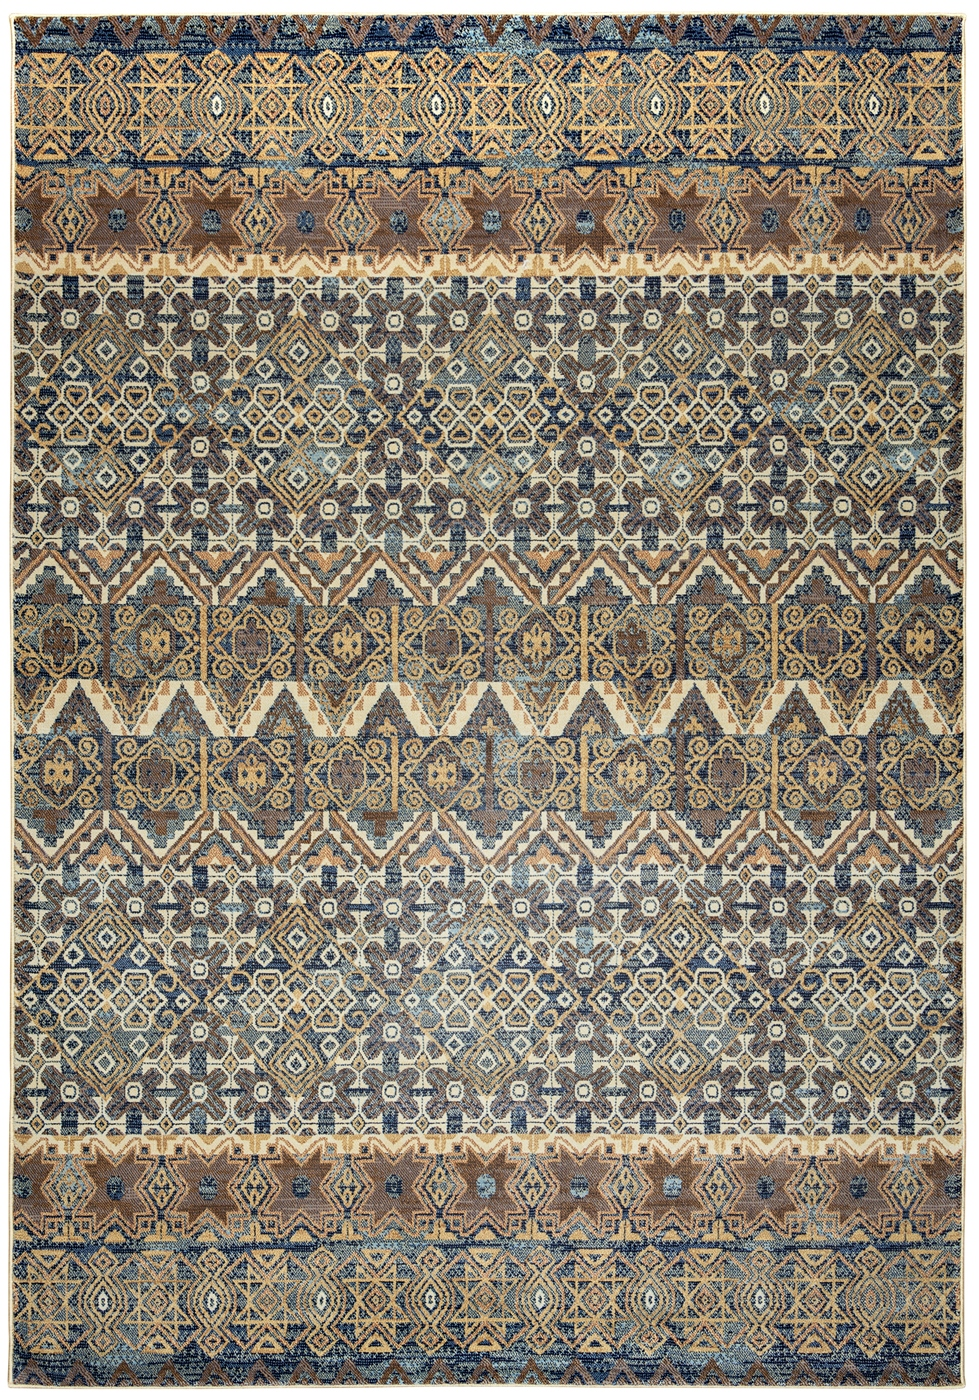 Bennington Tribal Print Area Rug In Grey Ivory Beige 3 3